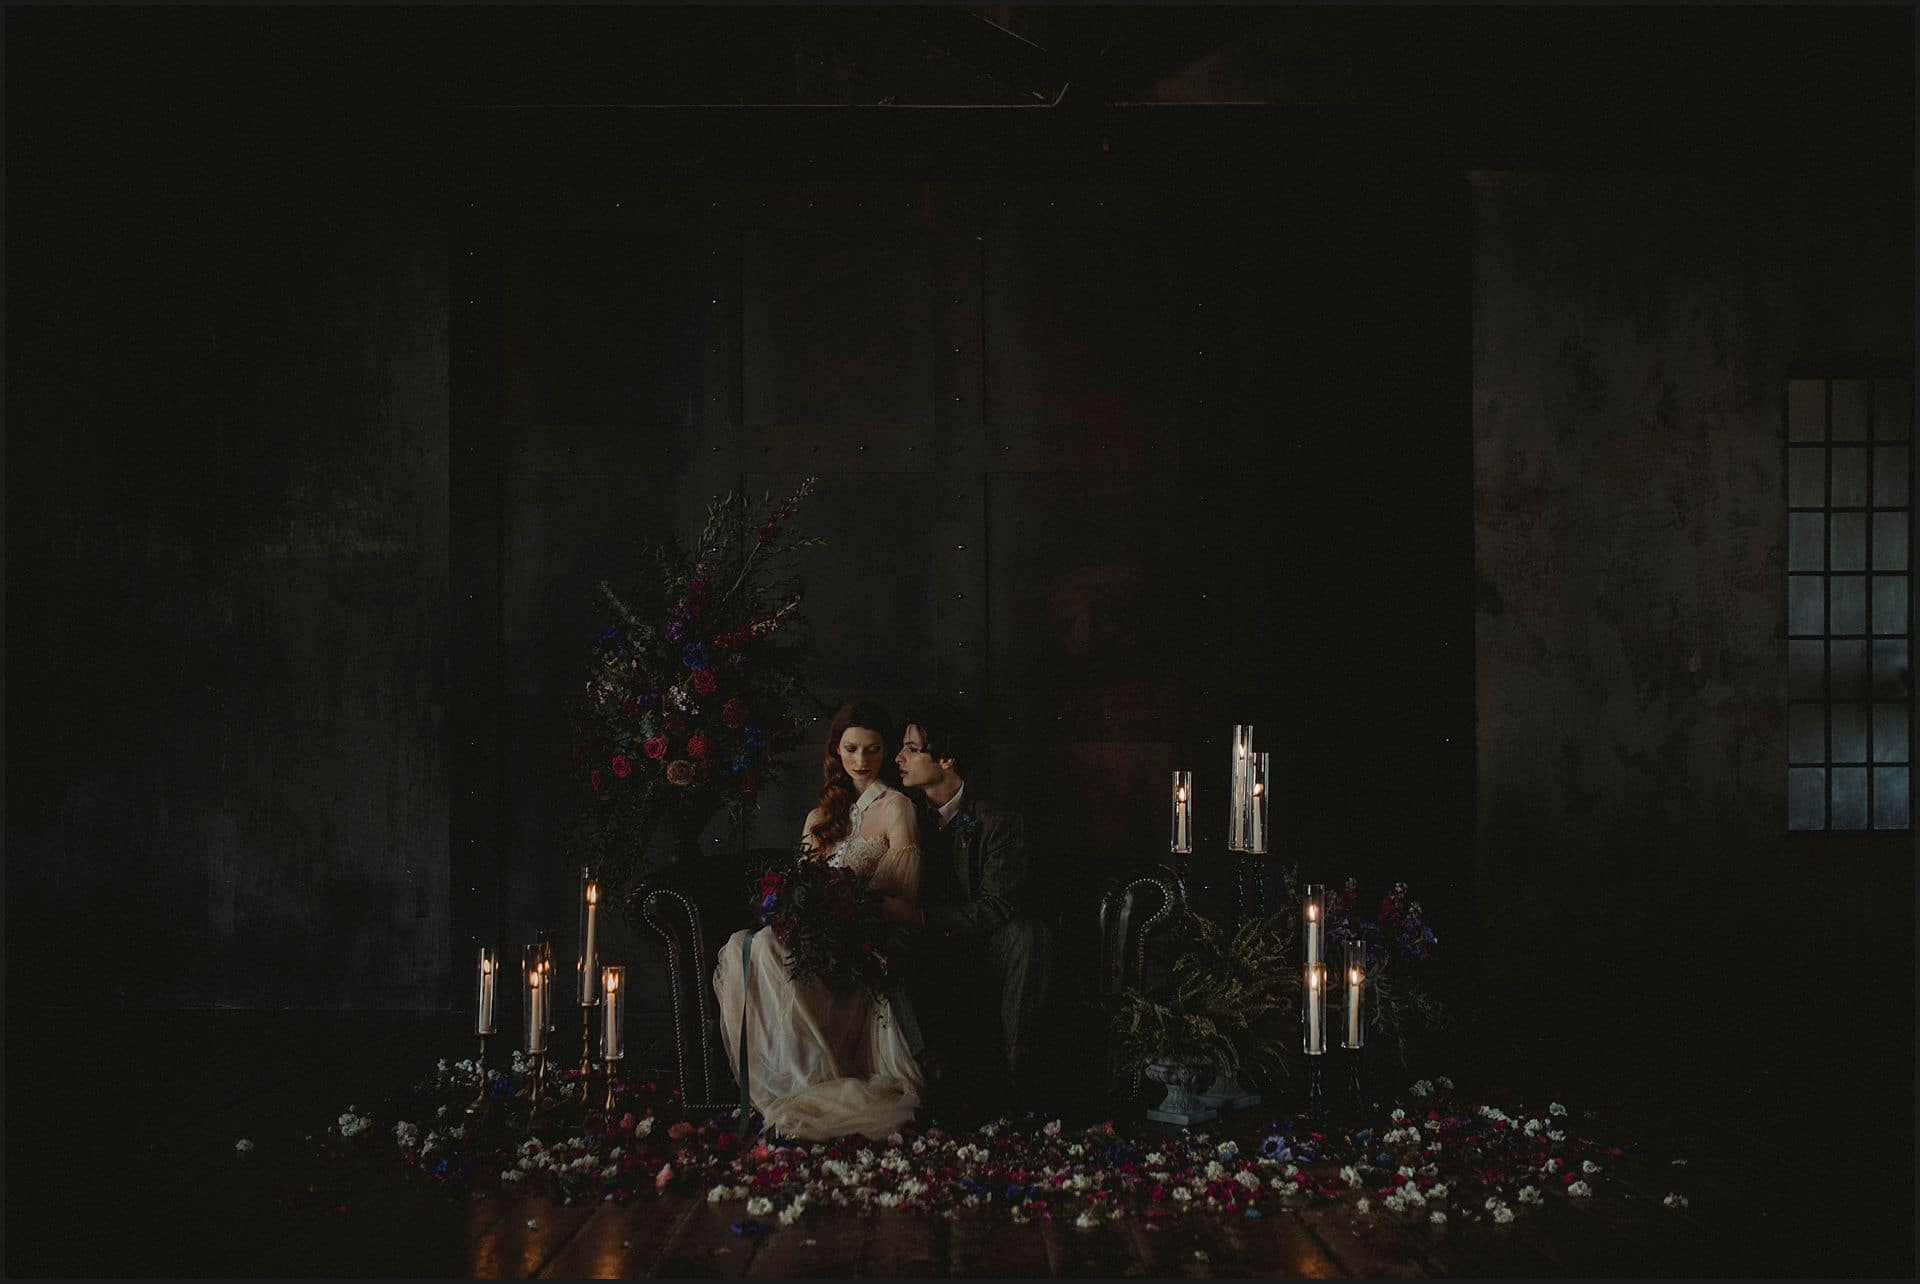 alternative wedding, flowers, candles, bride and groom, decadence, unconventional wedding, cross studio, milan, wedding photographer, wedding in italy